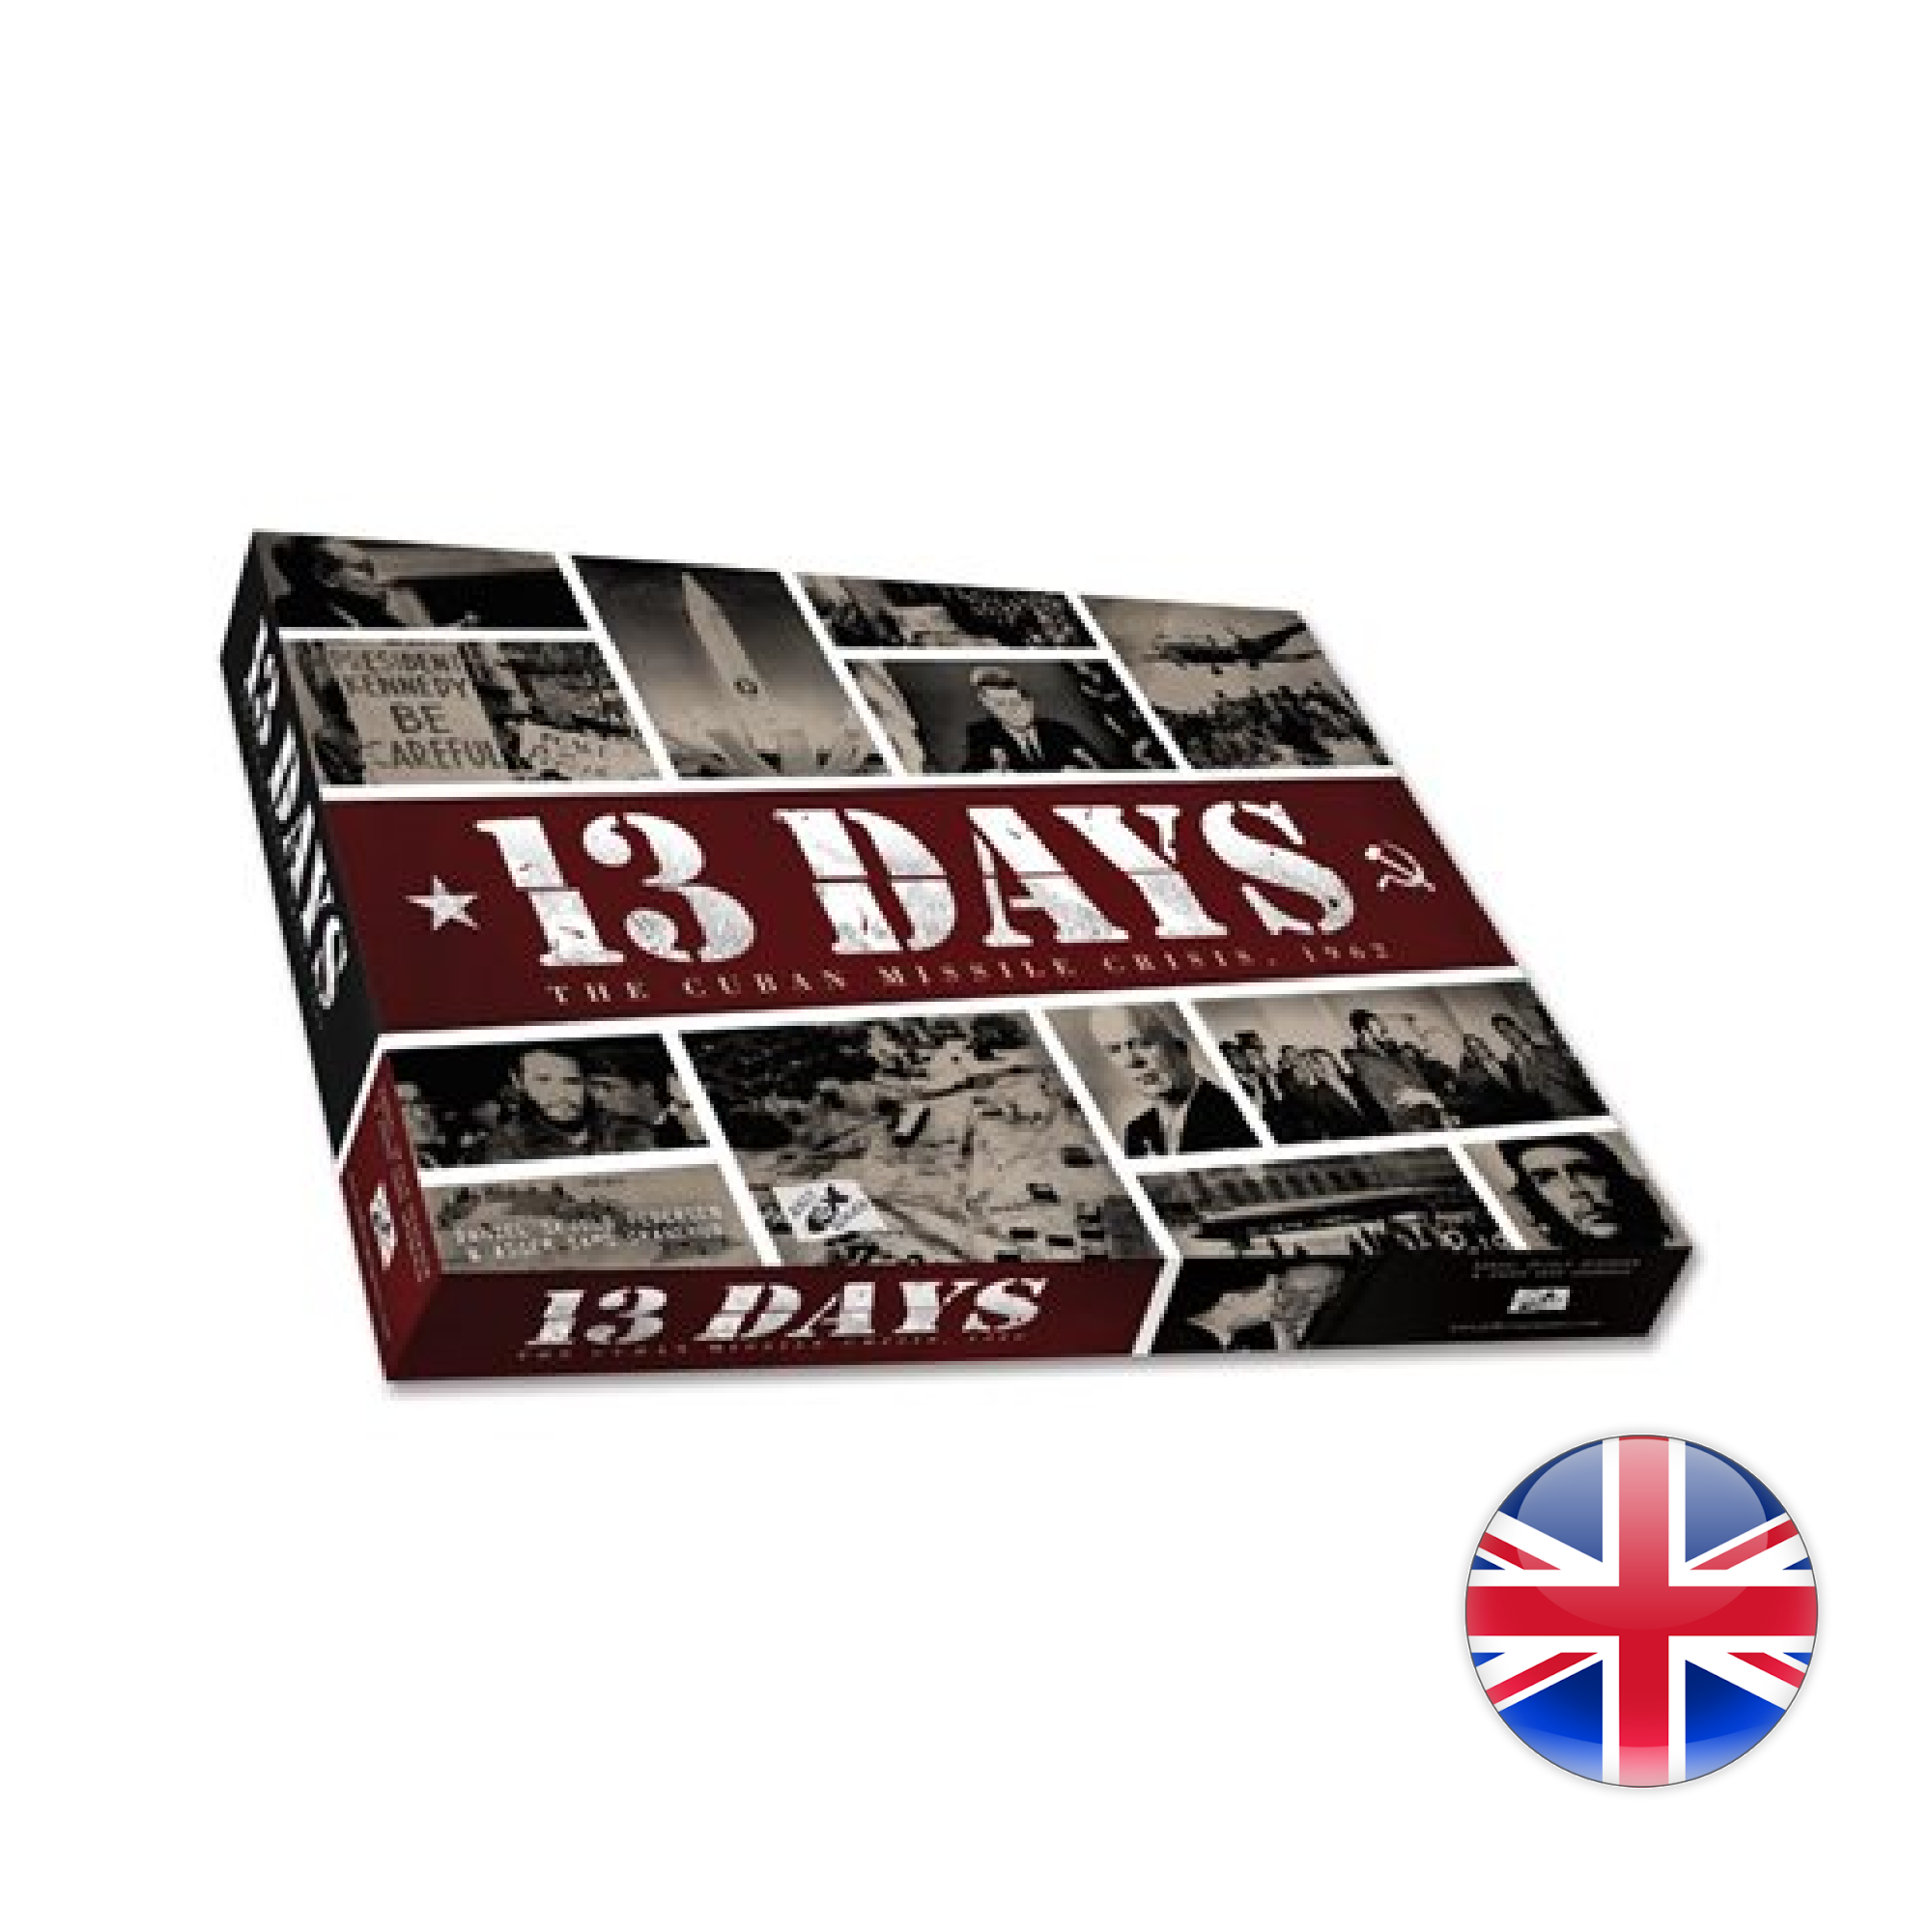 Ultra Pro 13 Days - The Cuban Missile Crisis, 1962